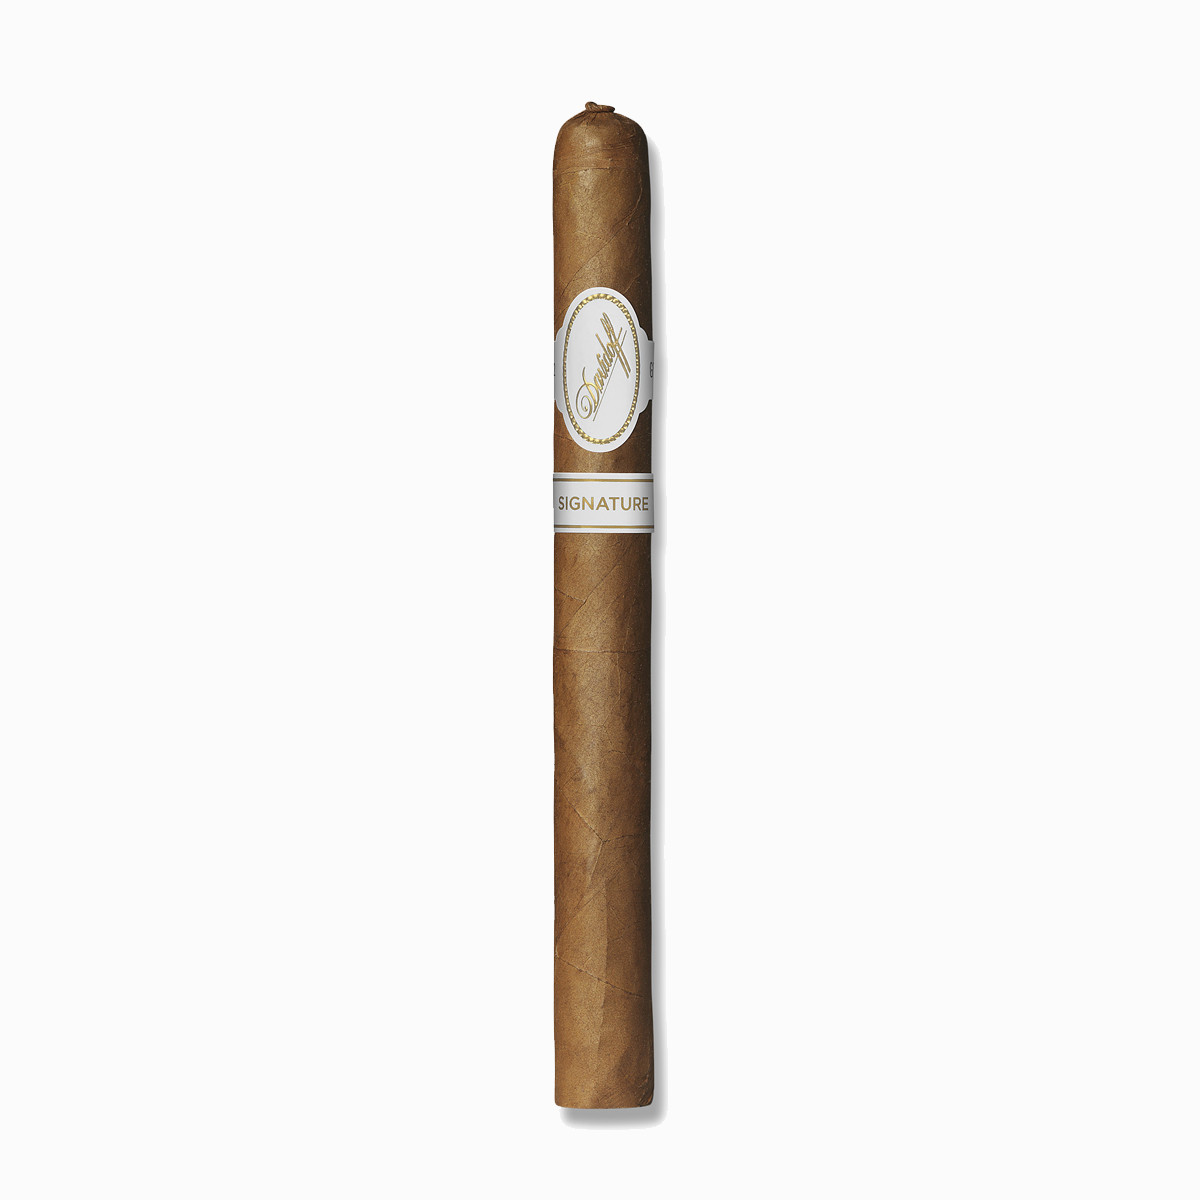 Davidoff Signature No. 2 (6x38/ Single)